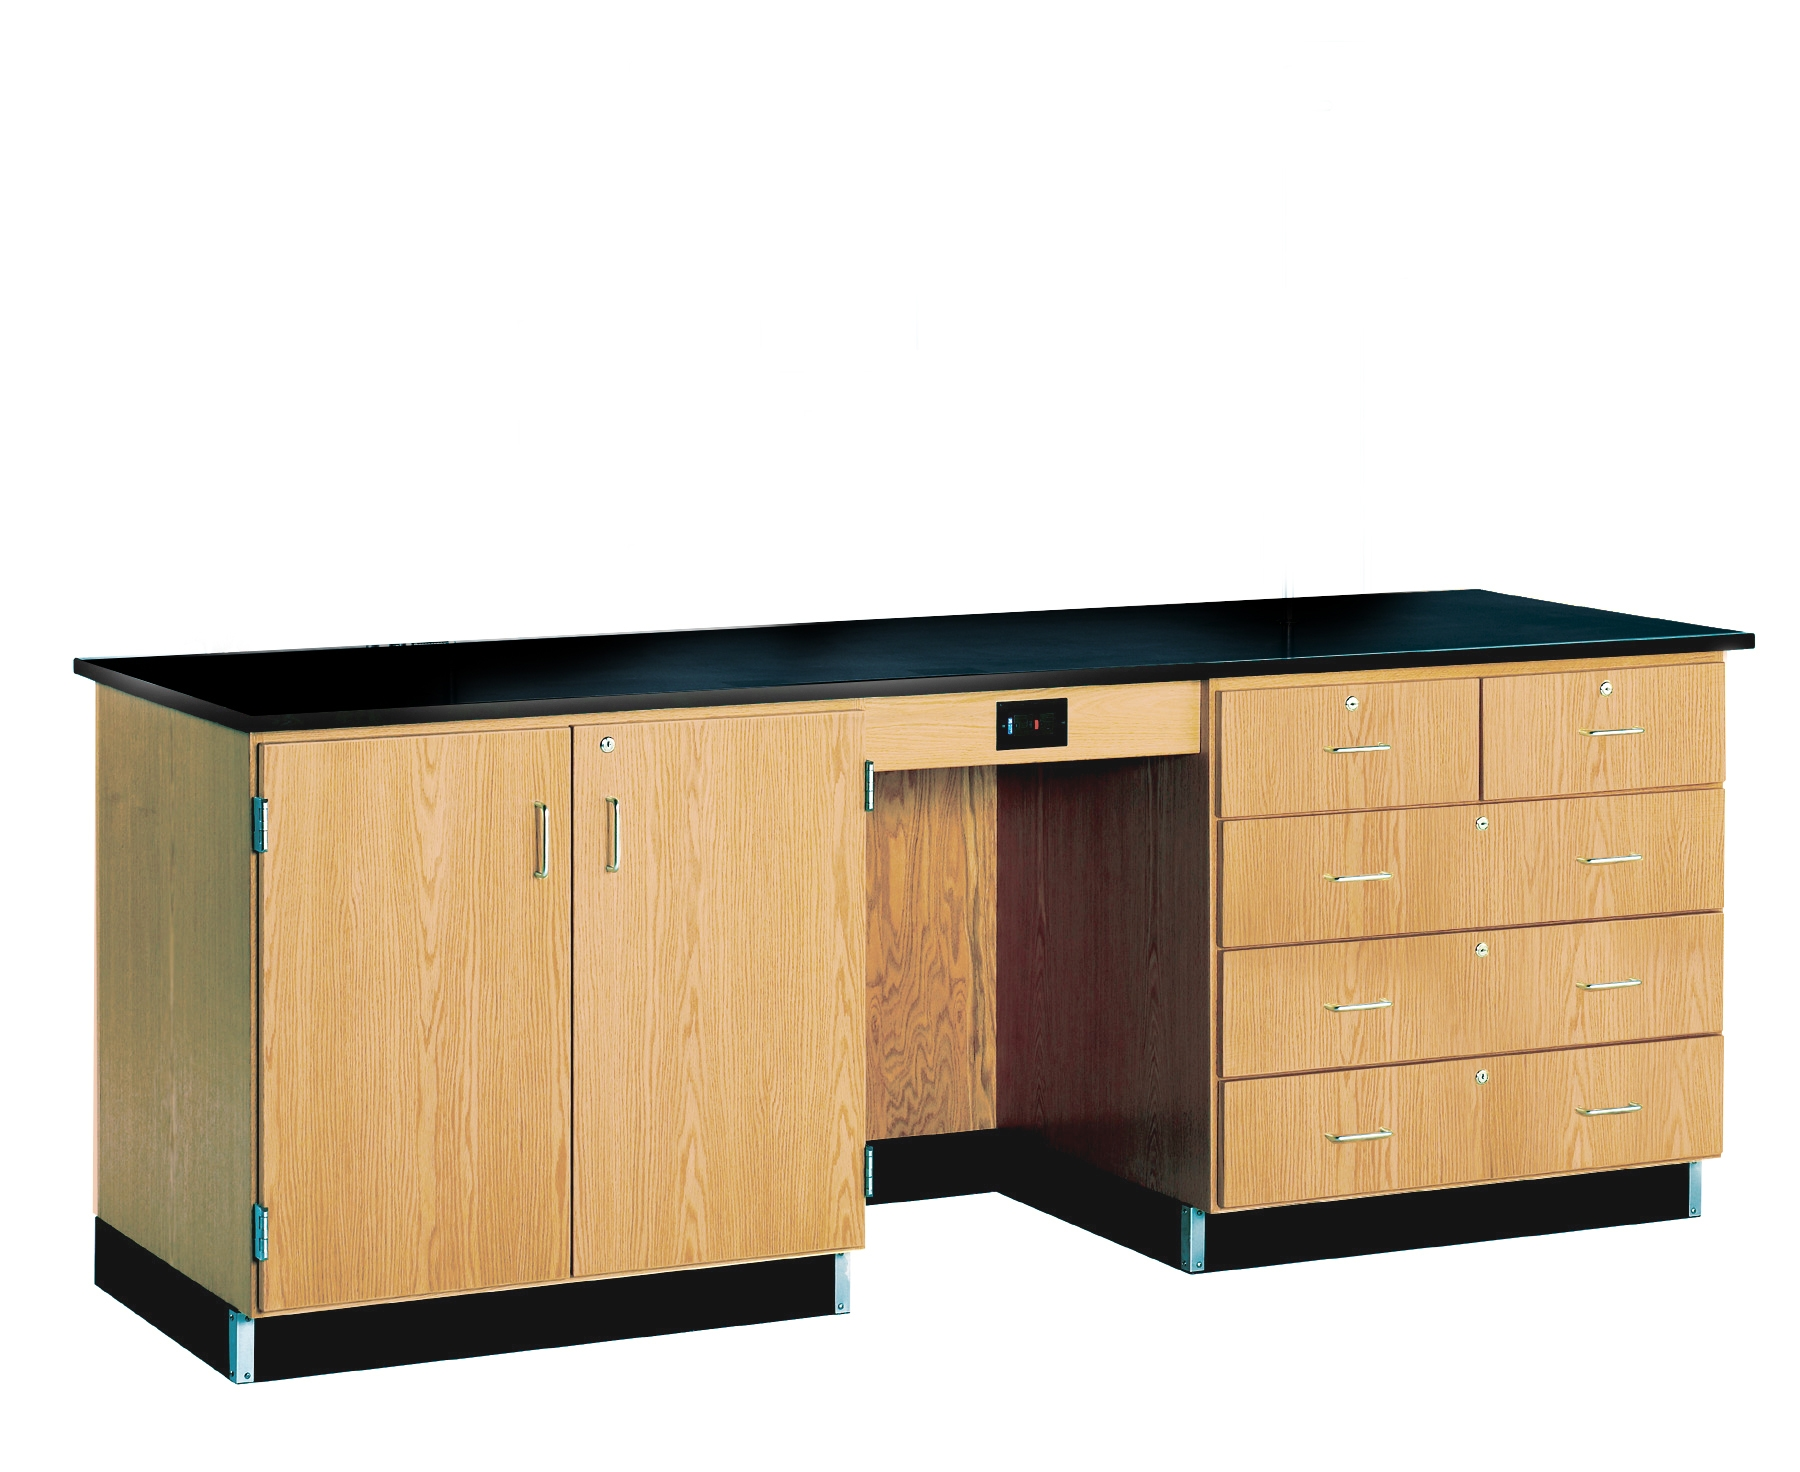 Diversified Woodcrafts 8' Instructor's Desk with Epoxy Resin Top